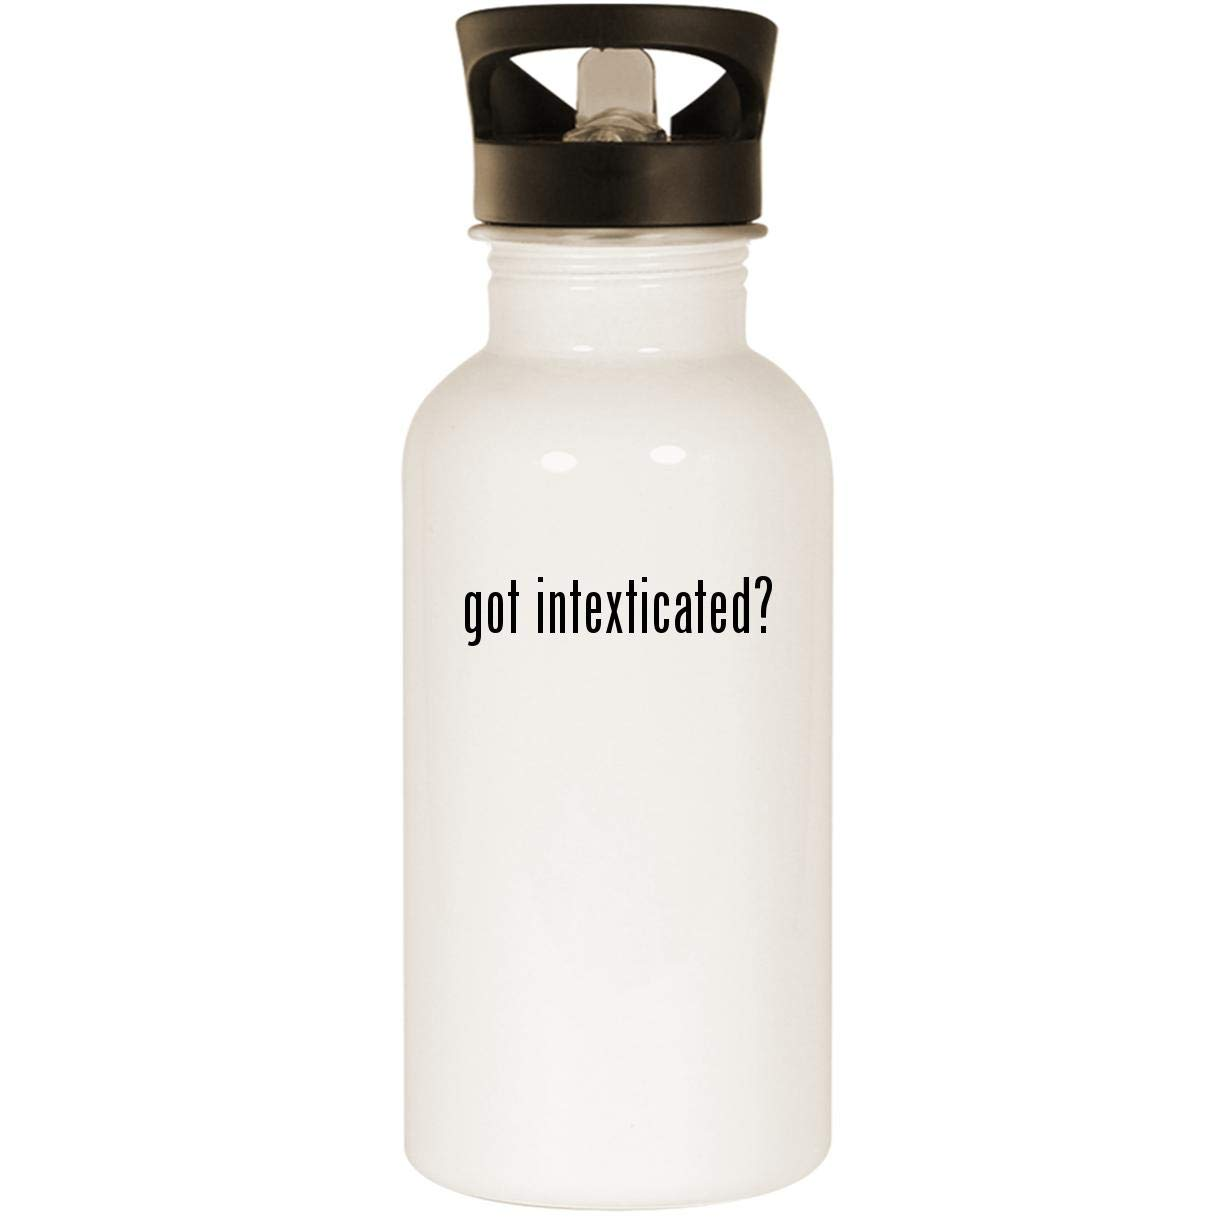 got intexticated? - Stainless Steel 20oz Road Ready Water Bottle, White by Molandra Products (Image #1)